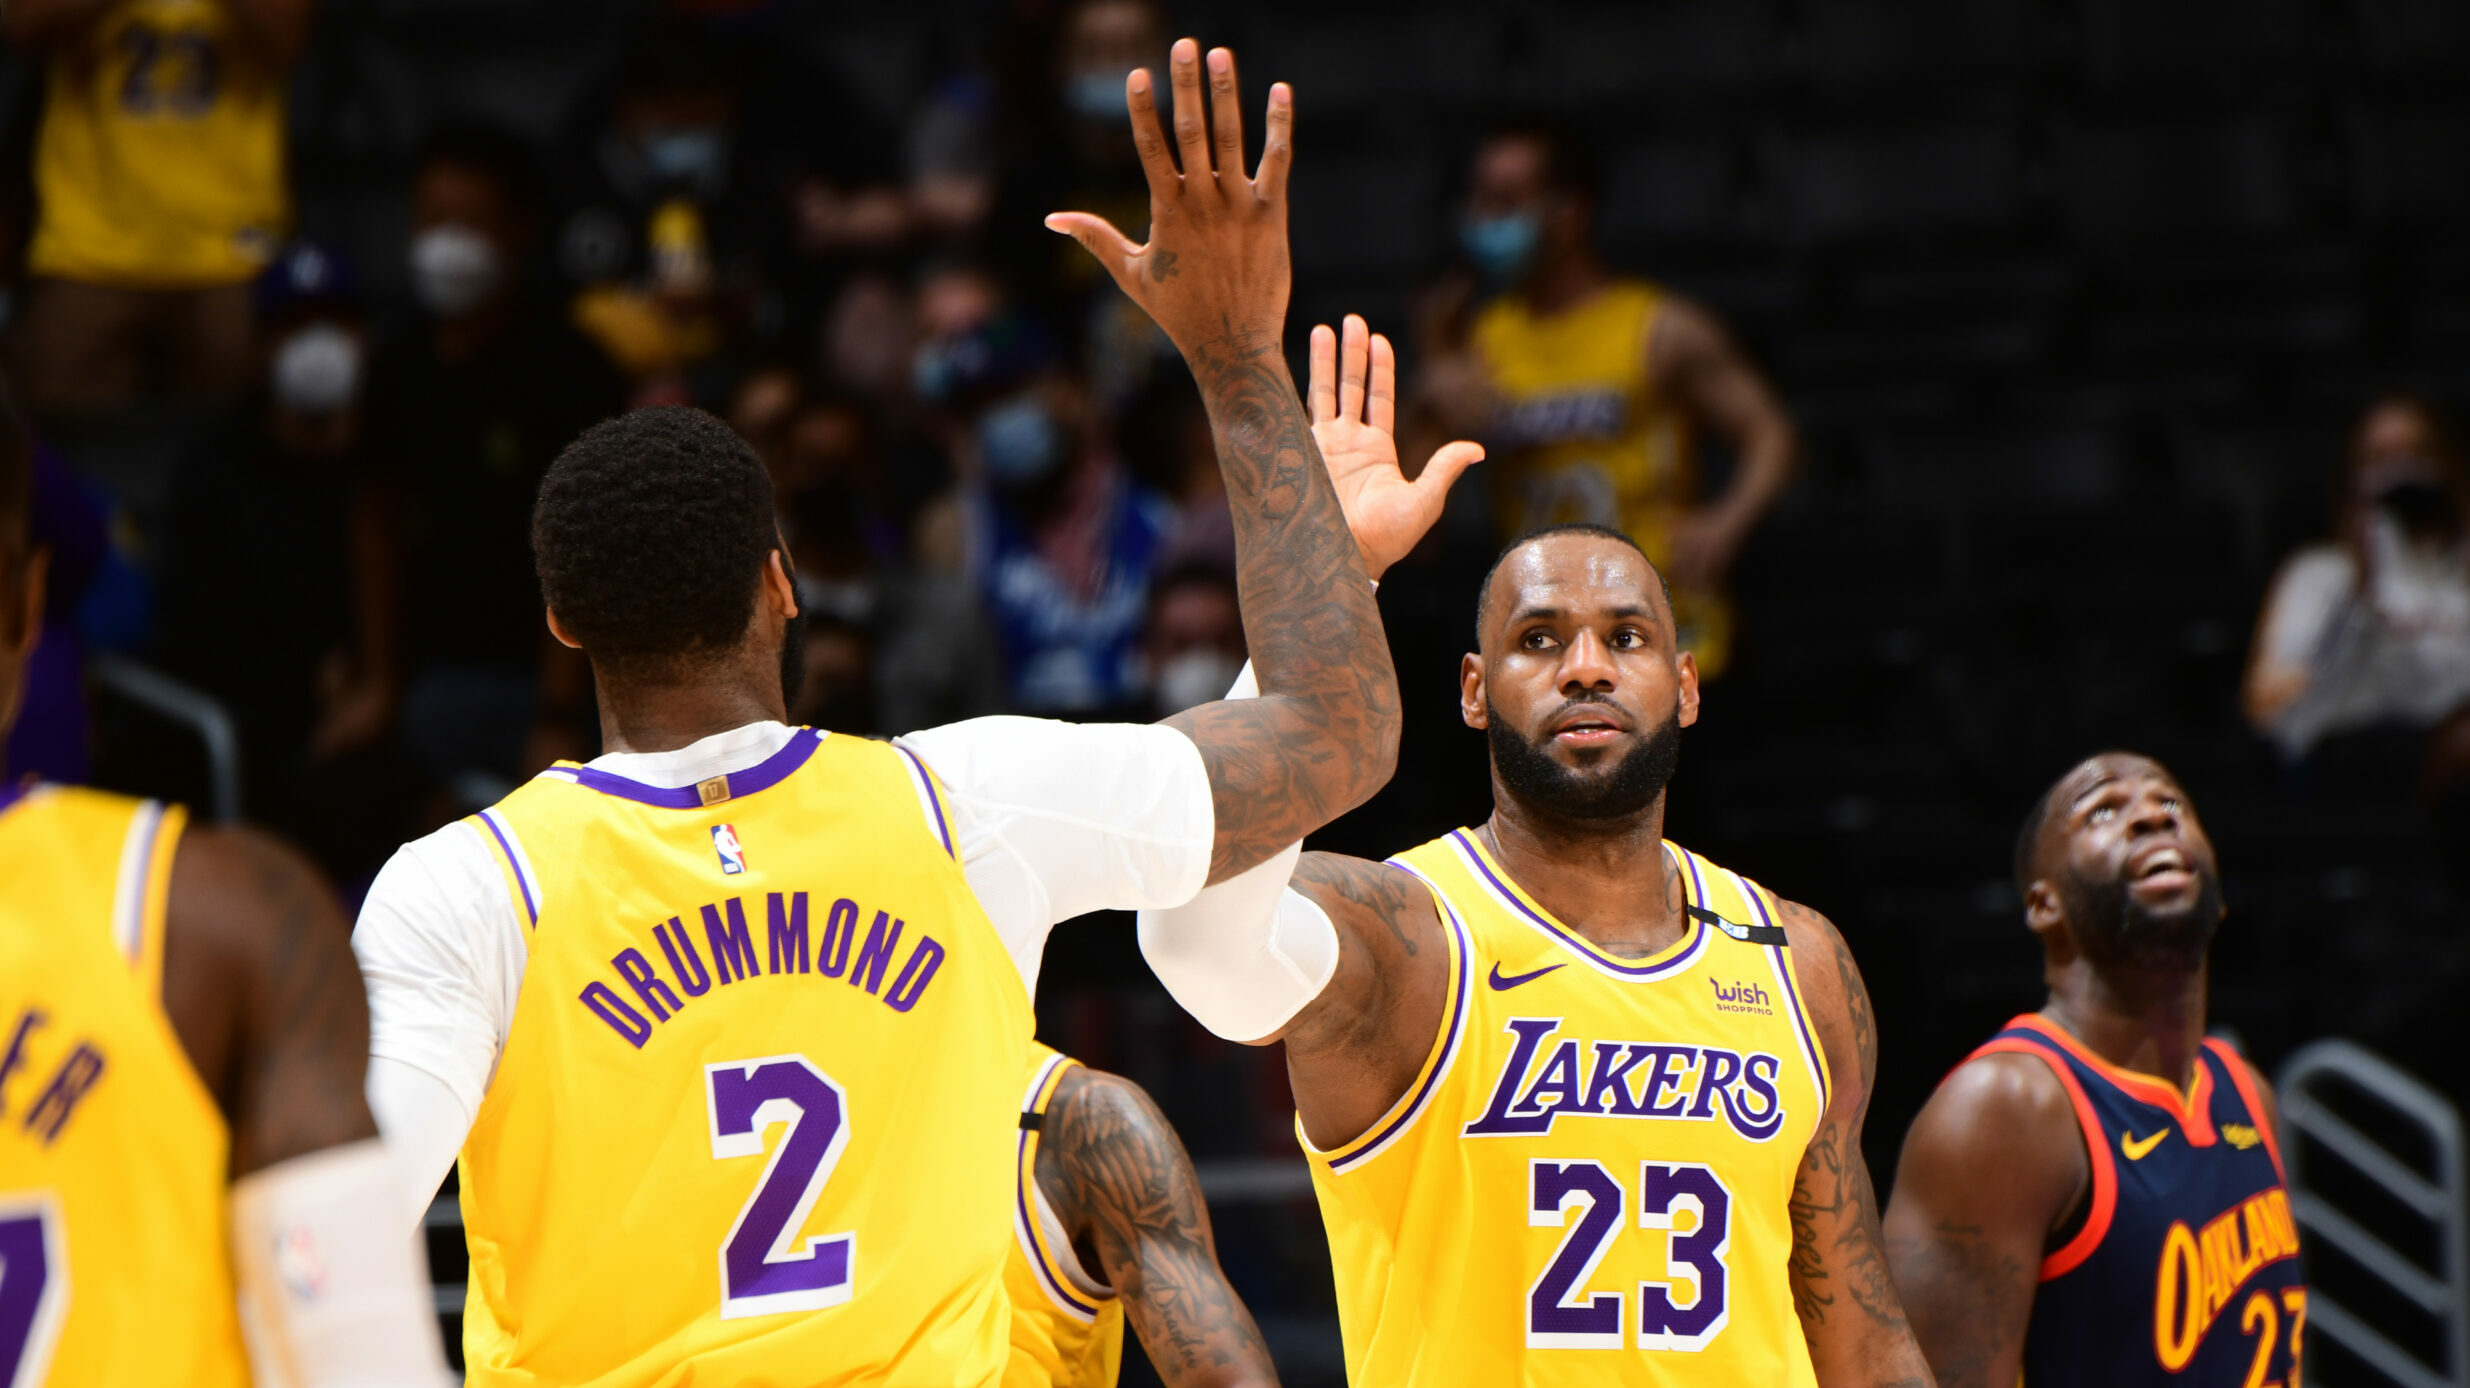 LeBron comes through with clutch 3 to send Lakers into playoffs